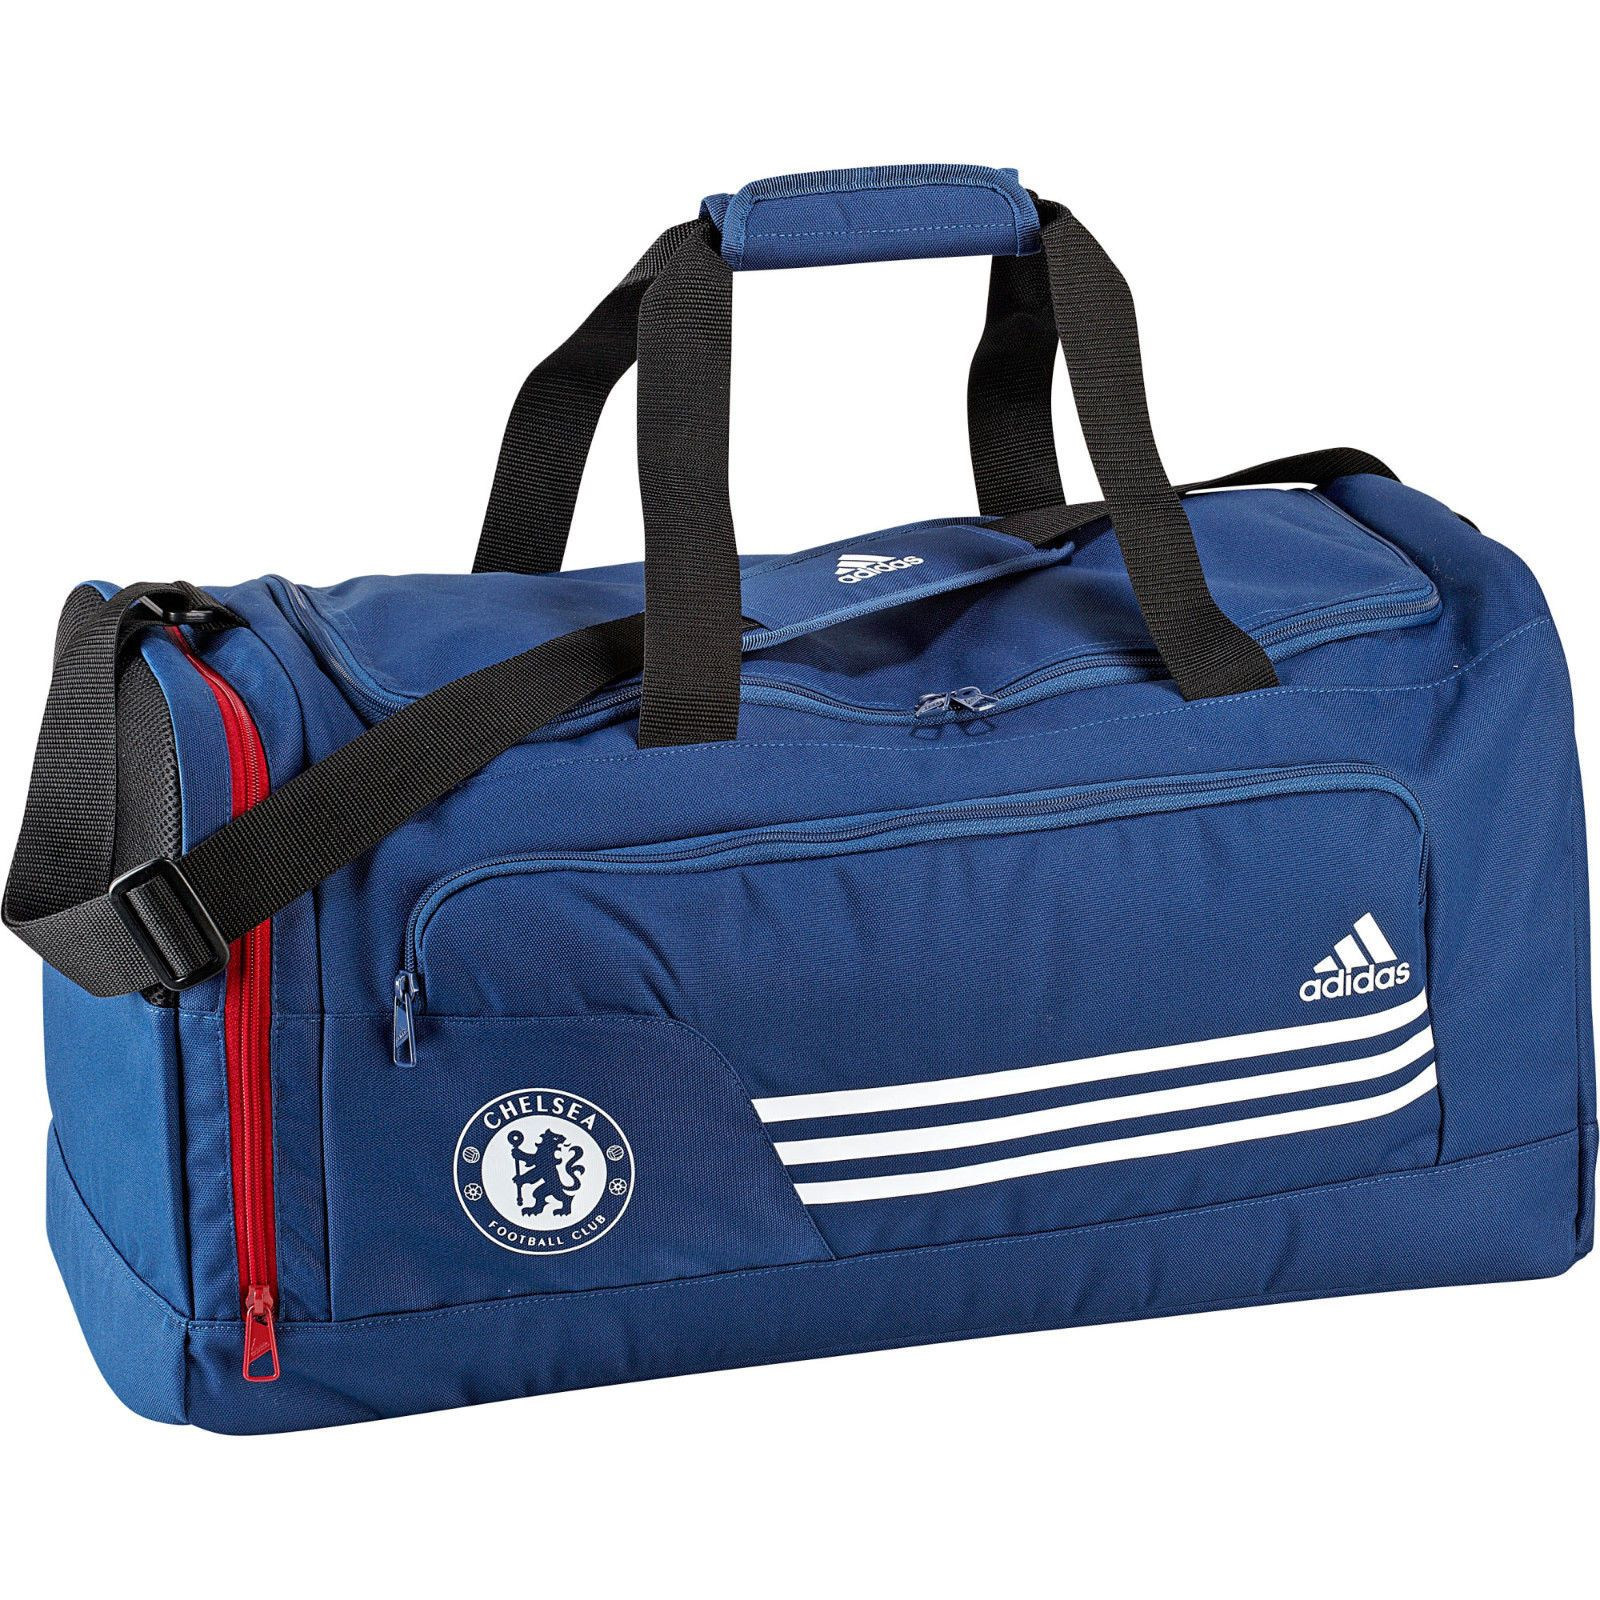 eam Bag ADIDAS BRAND NEW WITH TAGS Chelsea London 799beae157b8a